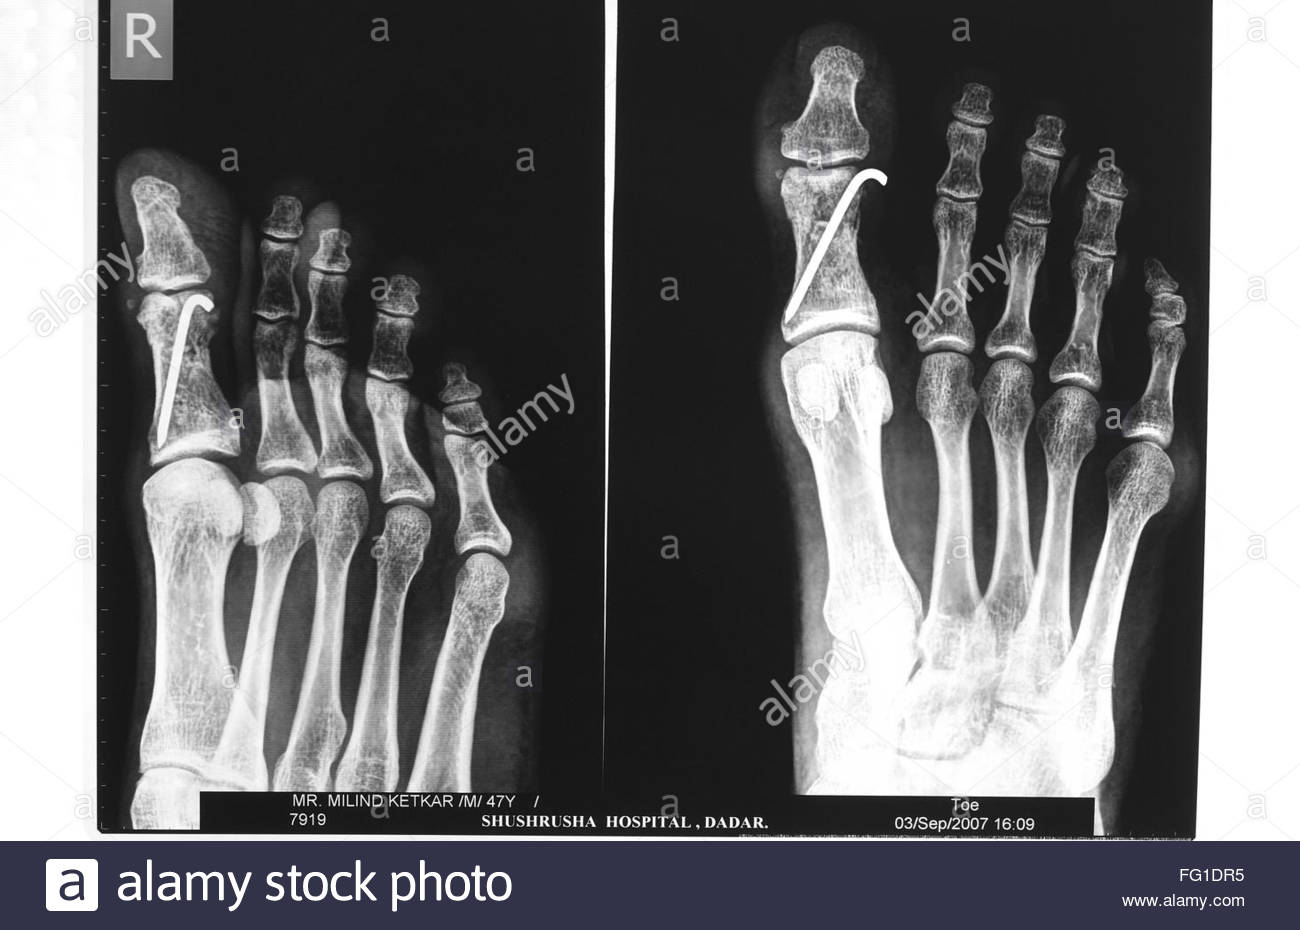 Fractured Fingers Stockfotos & Fractured Fingers Bilder - Alamy